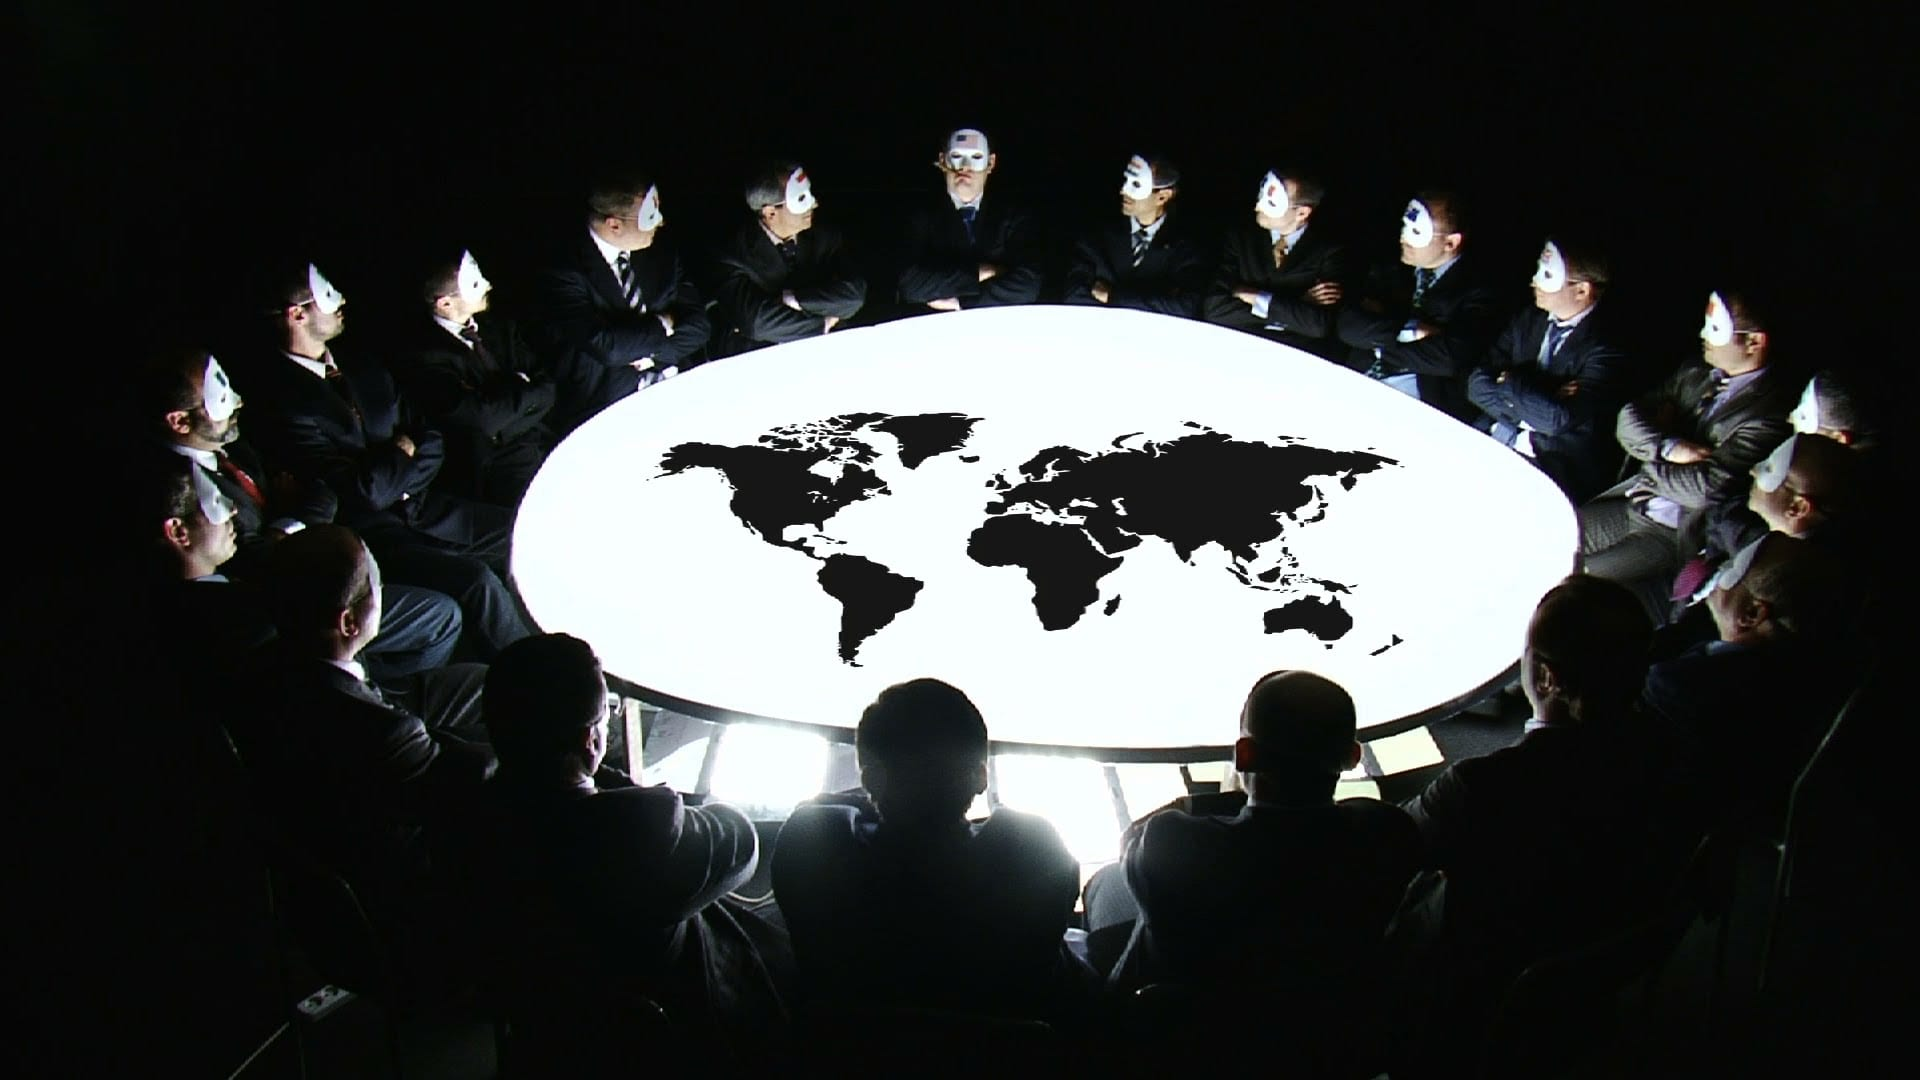 Democracy in the New World Order